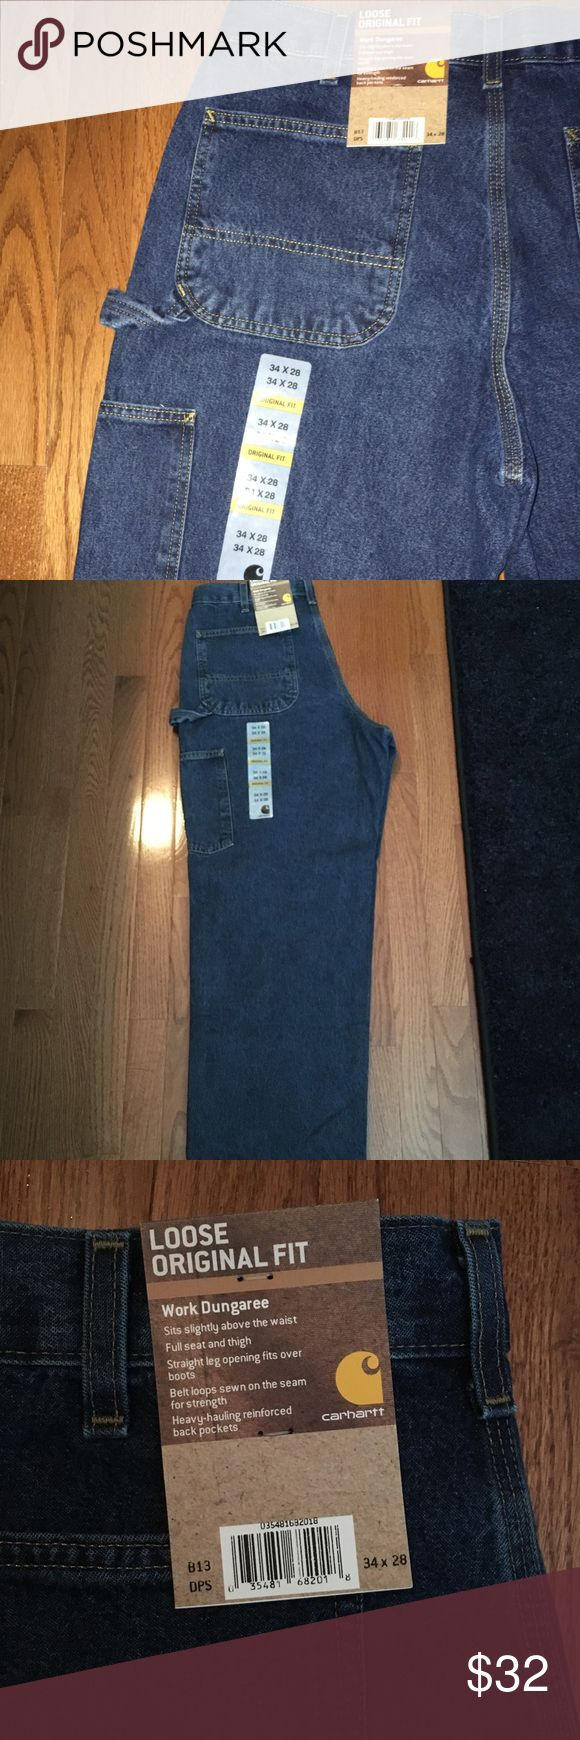 Men's Work Dungaree Jean | 34 x 28 Loose original fit signature denim dungaree jean. PERFECT work jeans. Comfy with LOTS of pockets. These are brand new never worn with tags. Size 34 x 28.  Men's heavyweight durable denim 15-ounce, 100% cotton denim Sits slightly above the waist Full seat and thigh Multiple tool and utility pockets Left leg hammer loop Stronger sewn-on-seam belt loops Carhartt Jeans